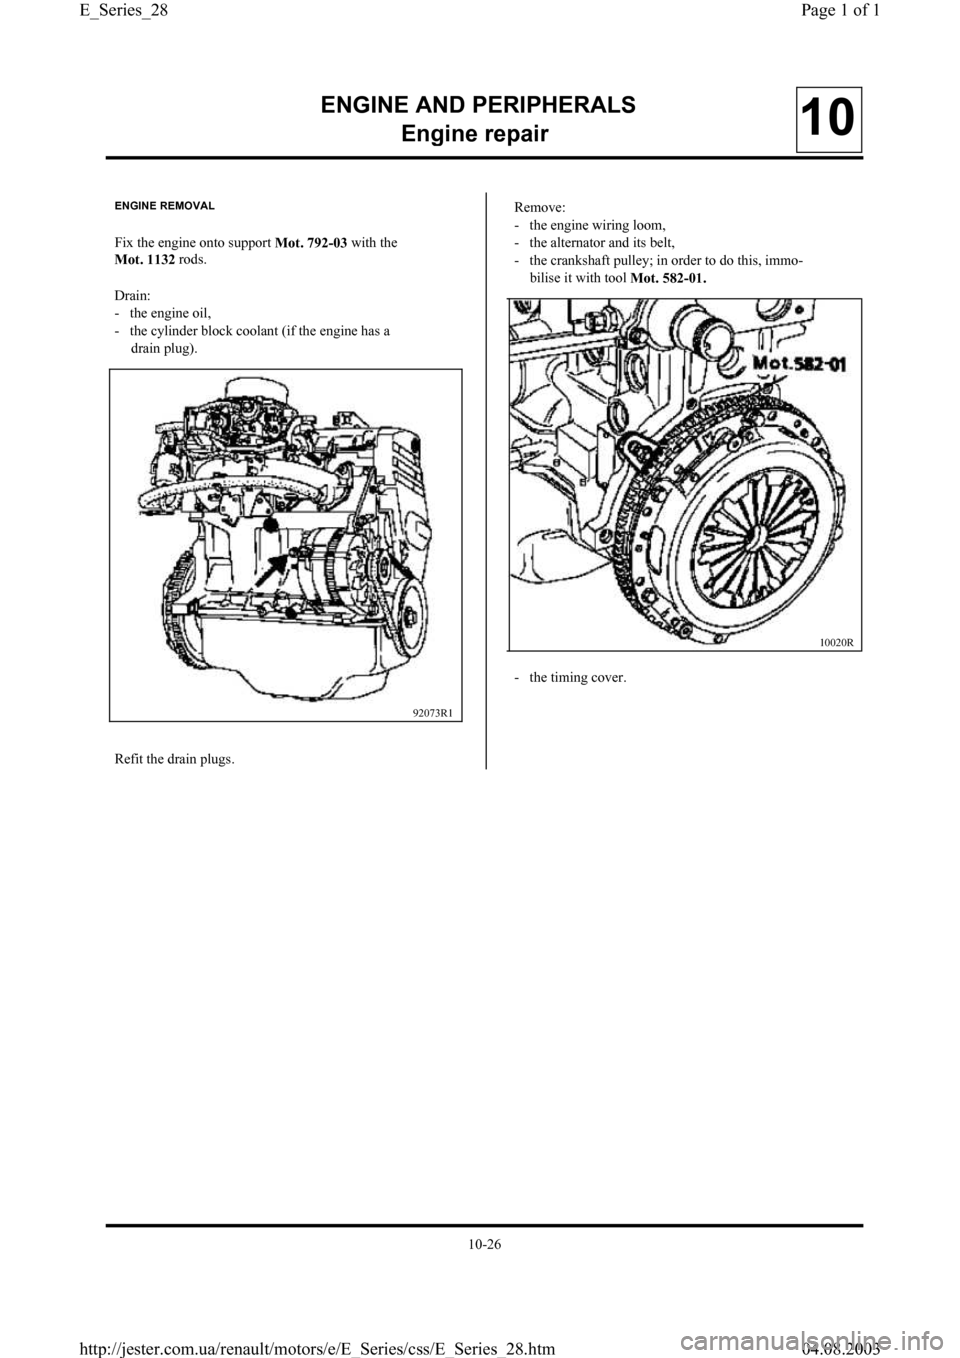 RENAULT CLIO 1997 X57 / 1.G Petrol Engines Workshop Manual, Page 28